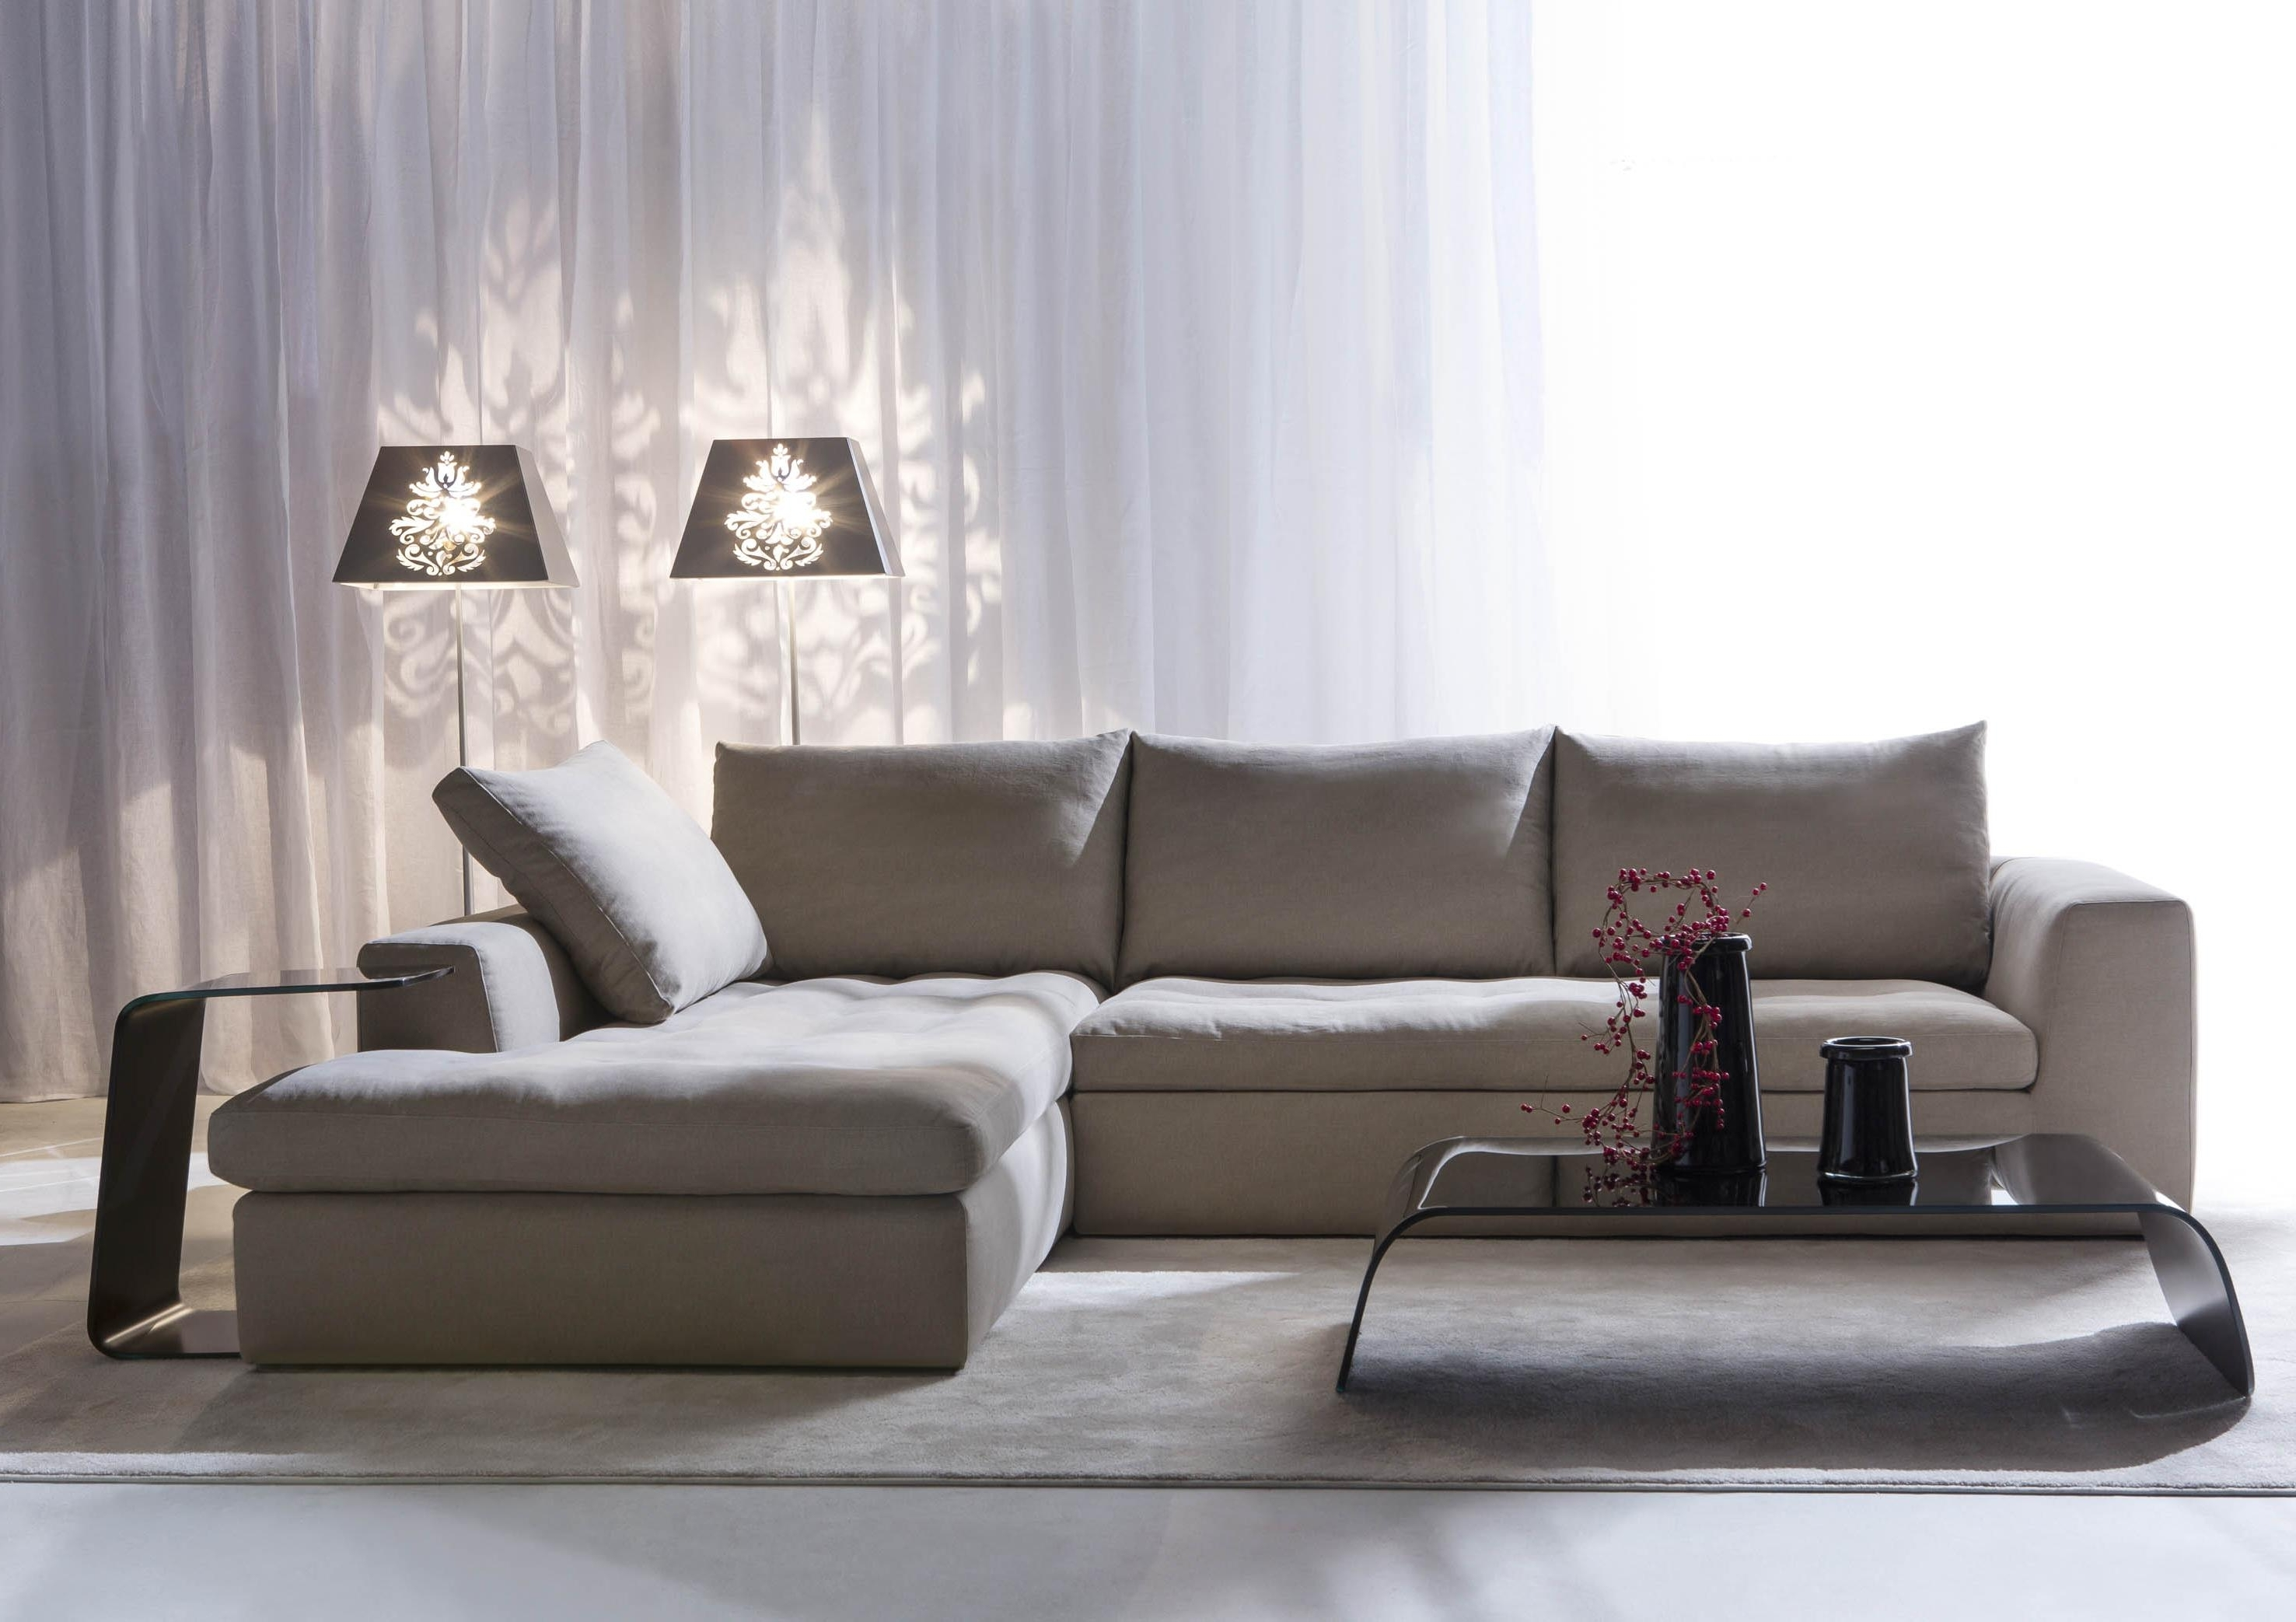 Sectional Sofa Design: Most High Class Wide Sectional Sofas Wide throughout Well-liked Wide Sectional Sofas